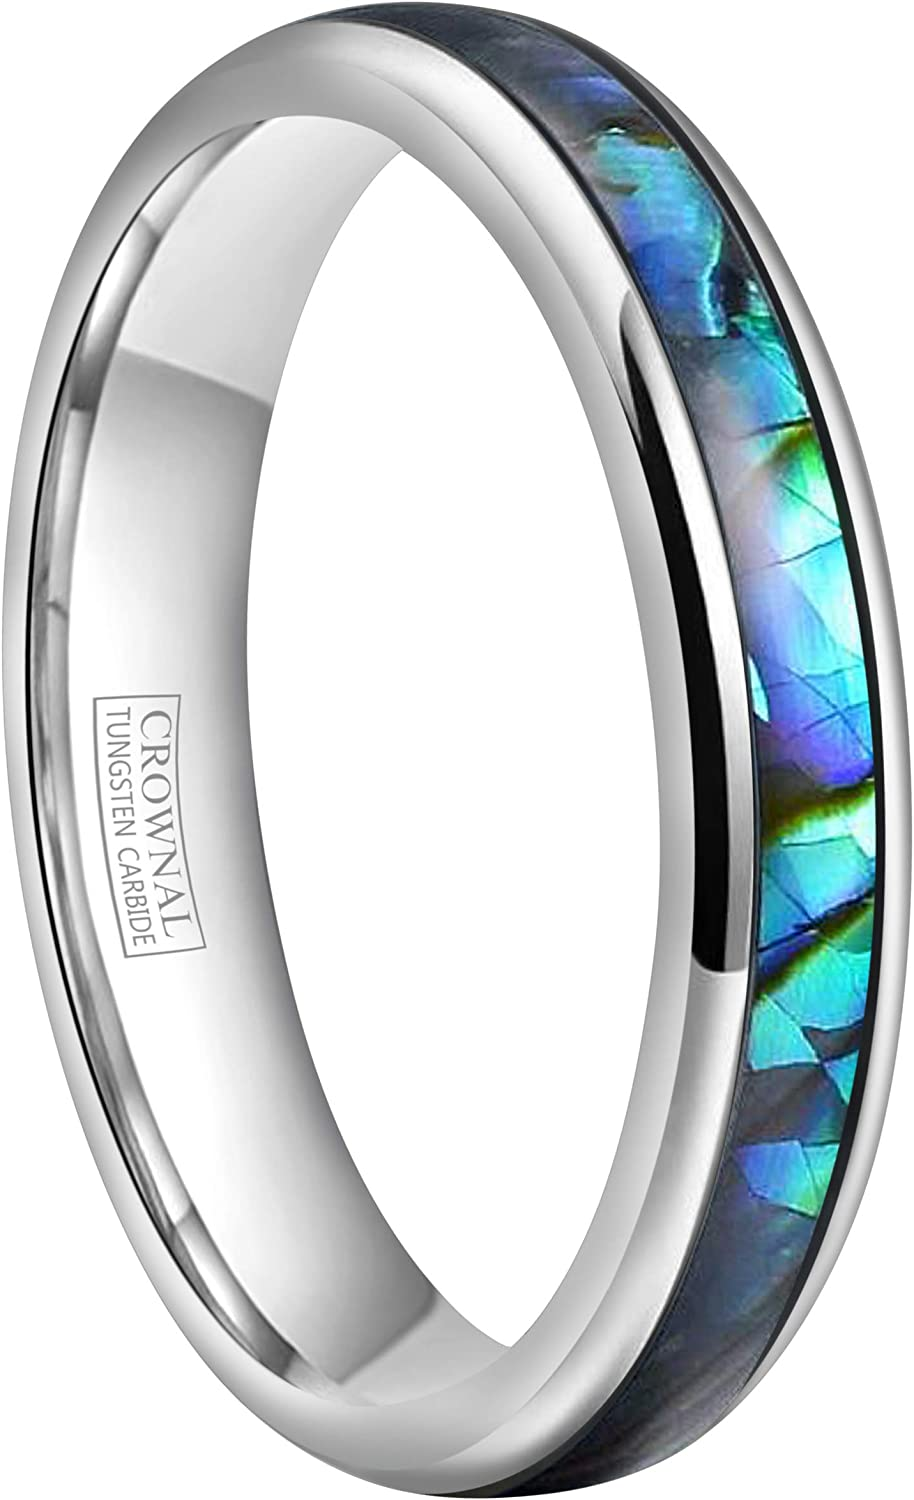 CROWNAL 4mm Abalone Shell/Turquoise Granules Inlay Tungsten Wedding Band Ring Black Silver Men Women Domed Polished Comfort Fit Size 4 to 11